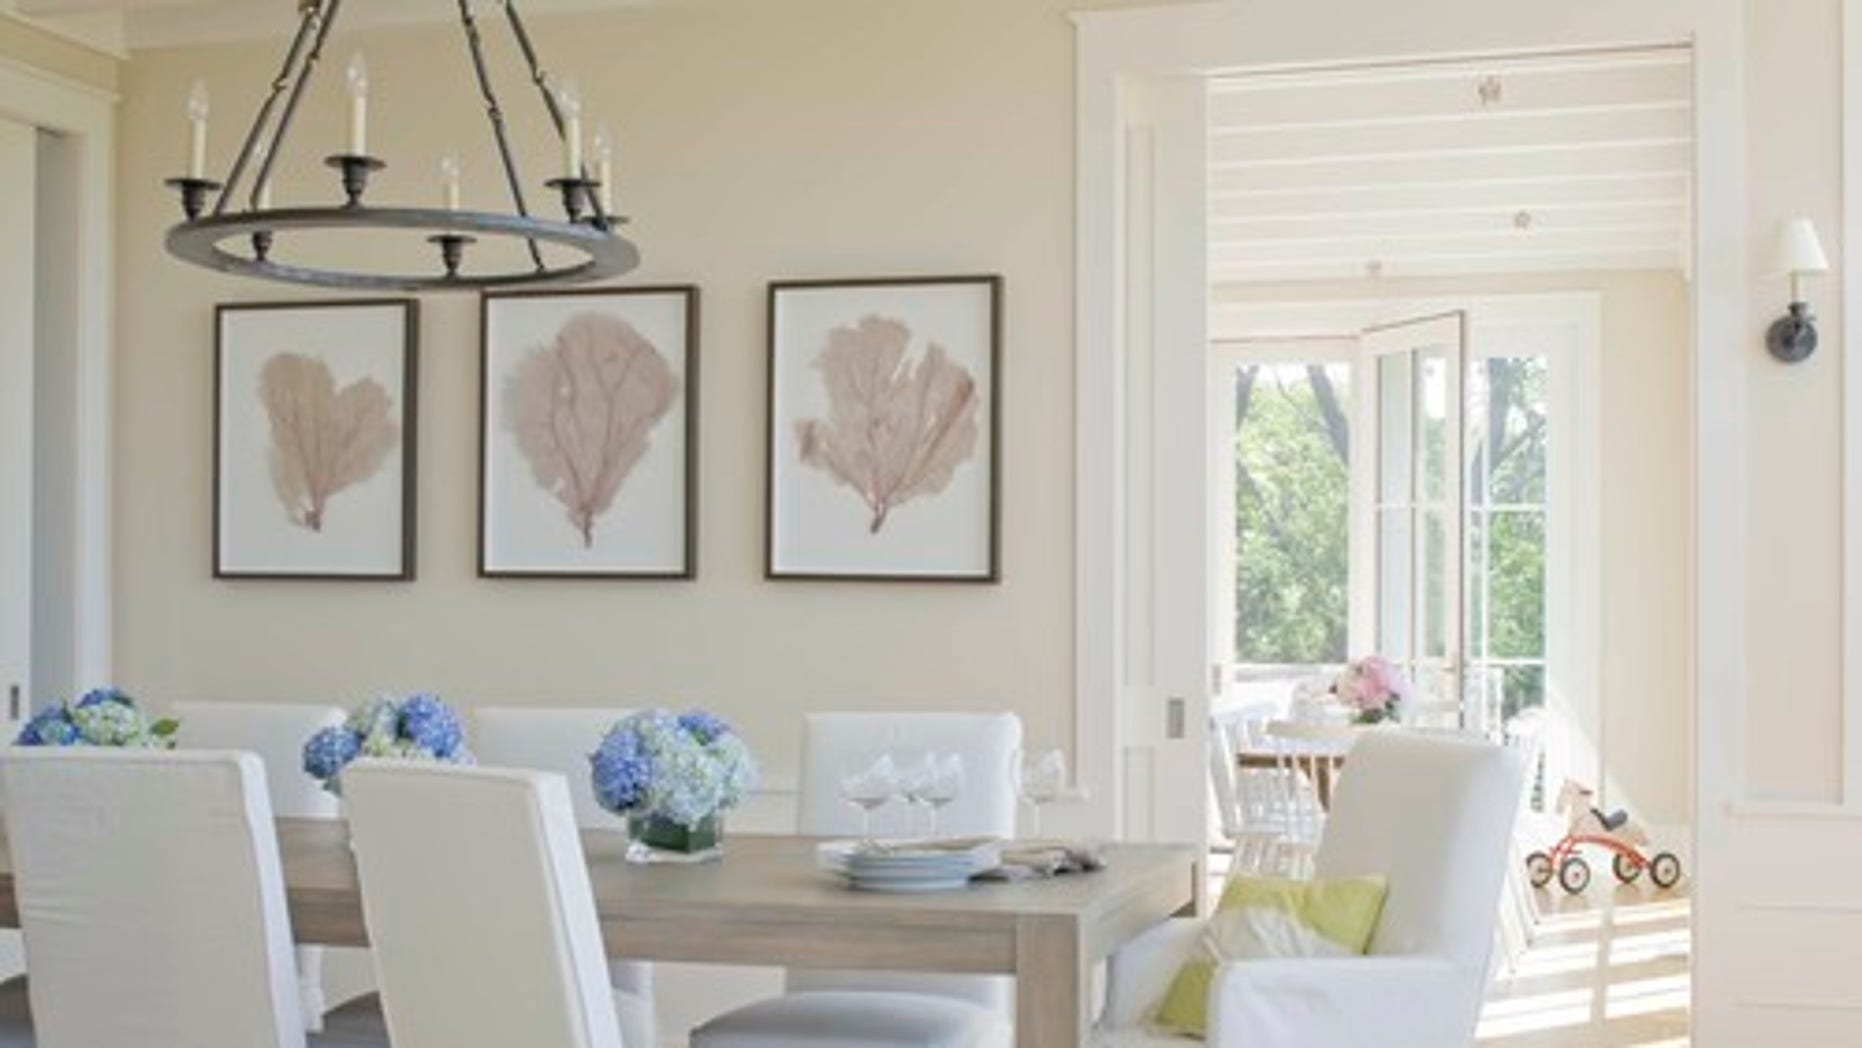 21 Staging tips for selling your home